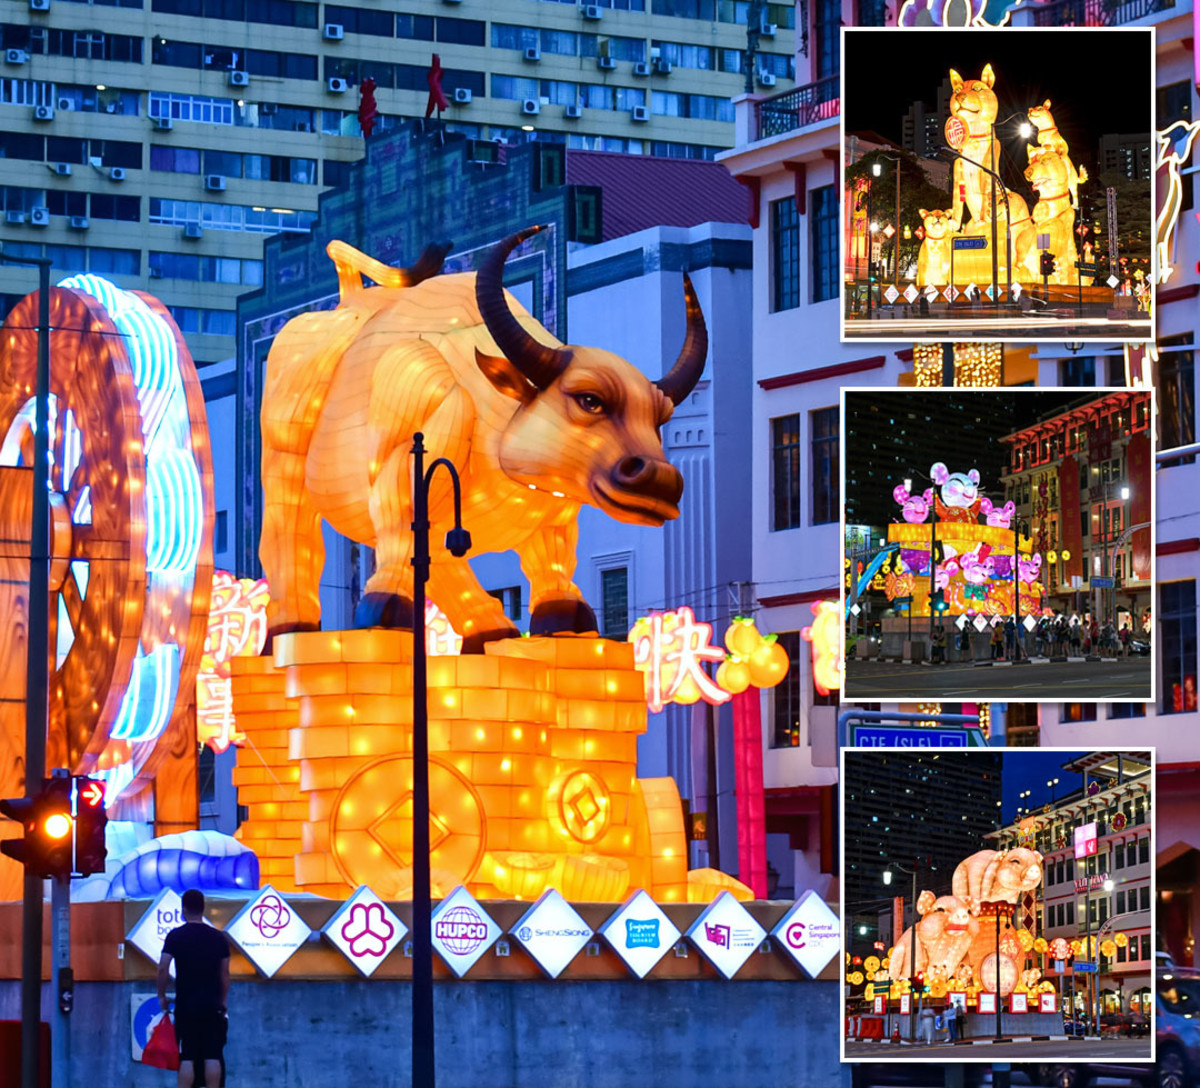 The incoming Chinese Zodiac animal for the New Year is always showcased at the Chinatown festive Light-Up. The showpiece for this picture is that for Year of the Ox 2021.